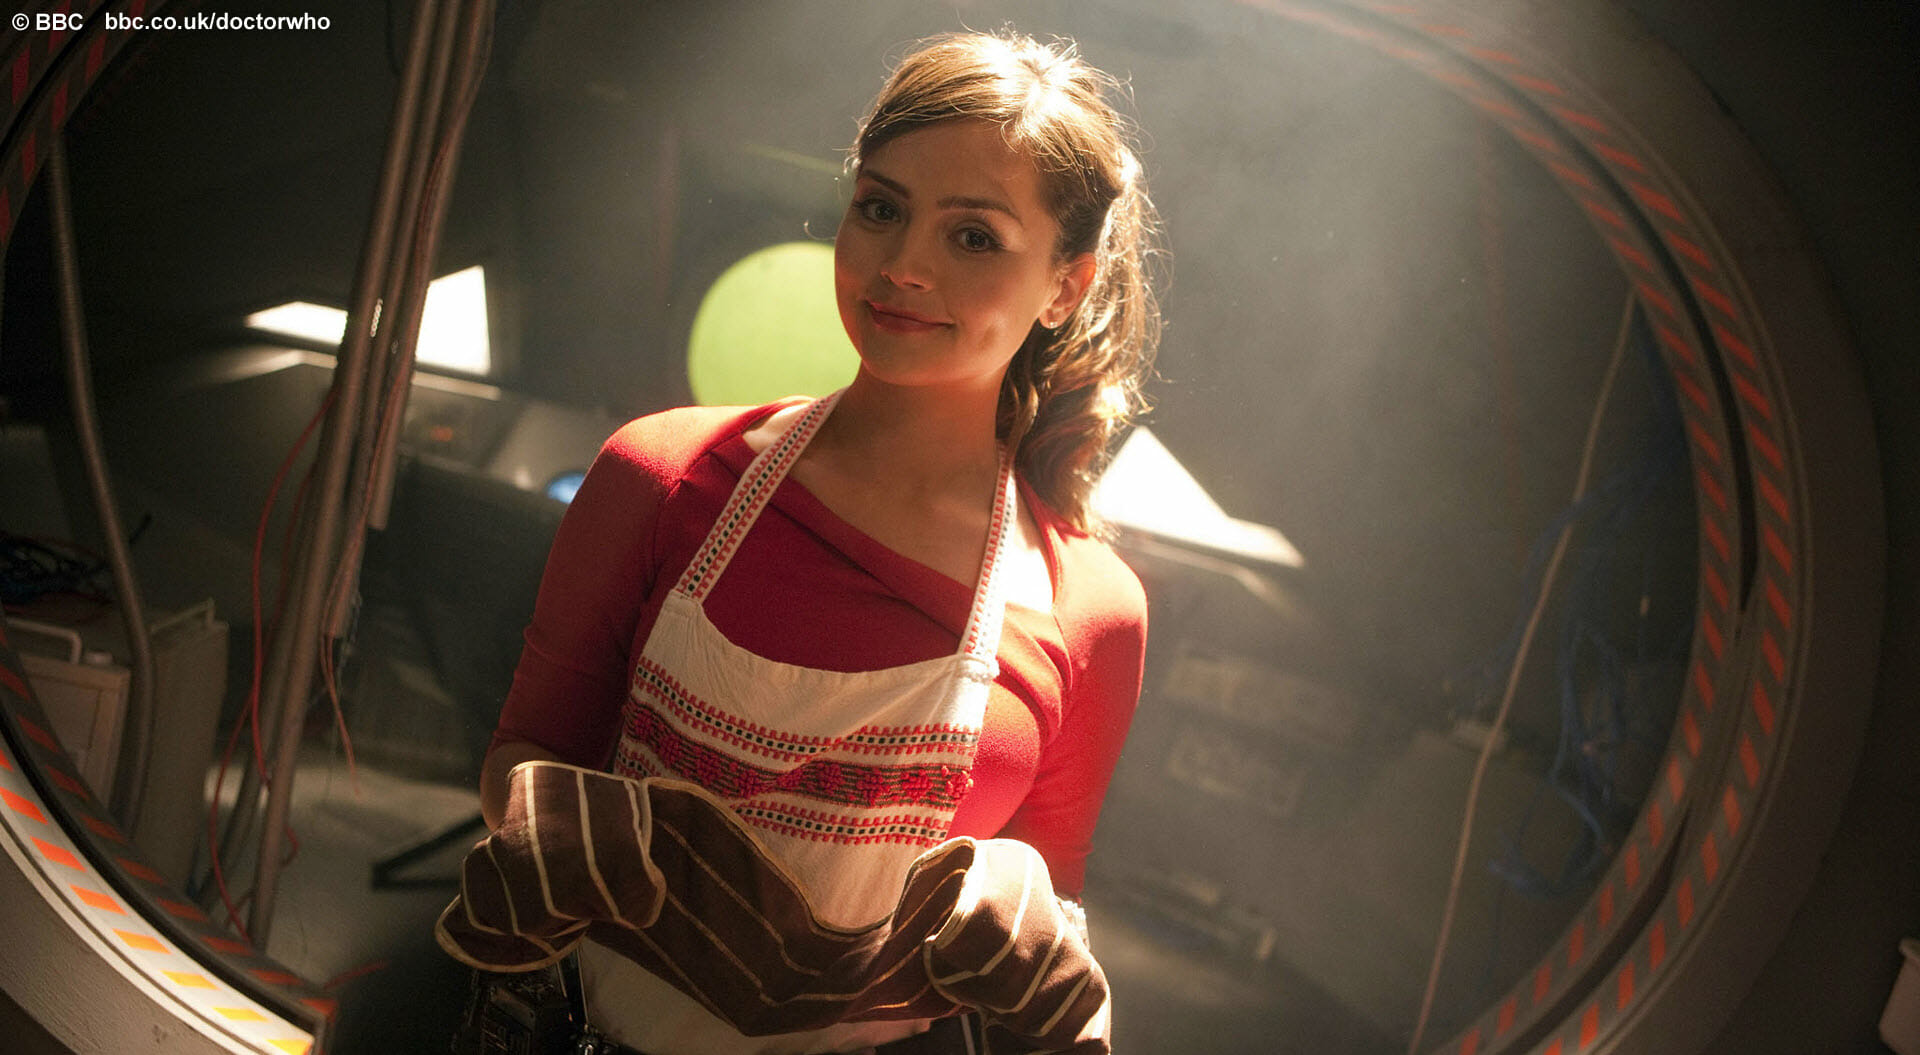 Doctor Who Oswin Oswald Wallpapers